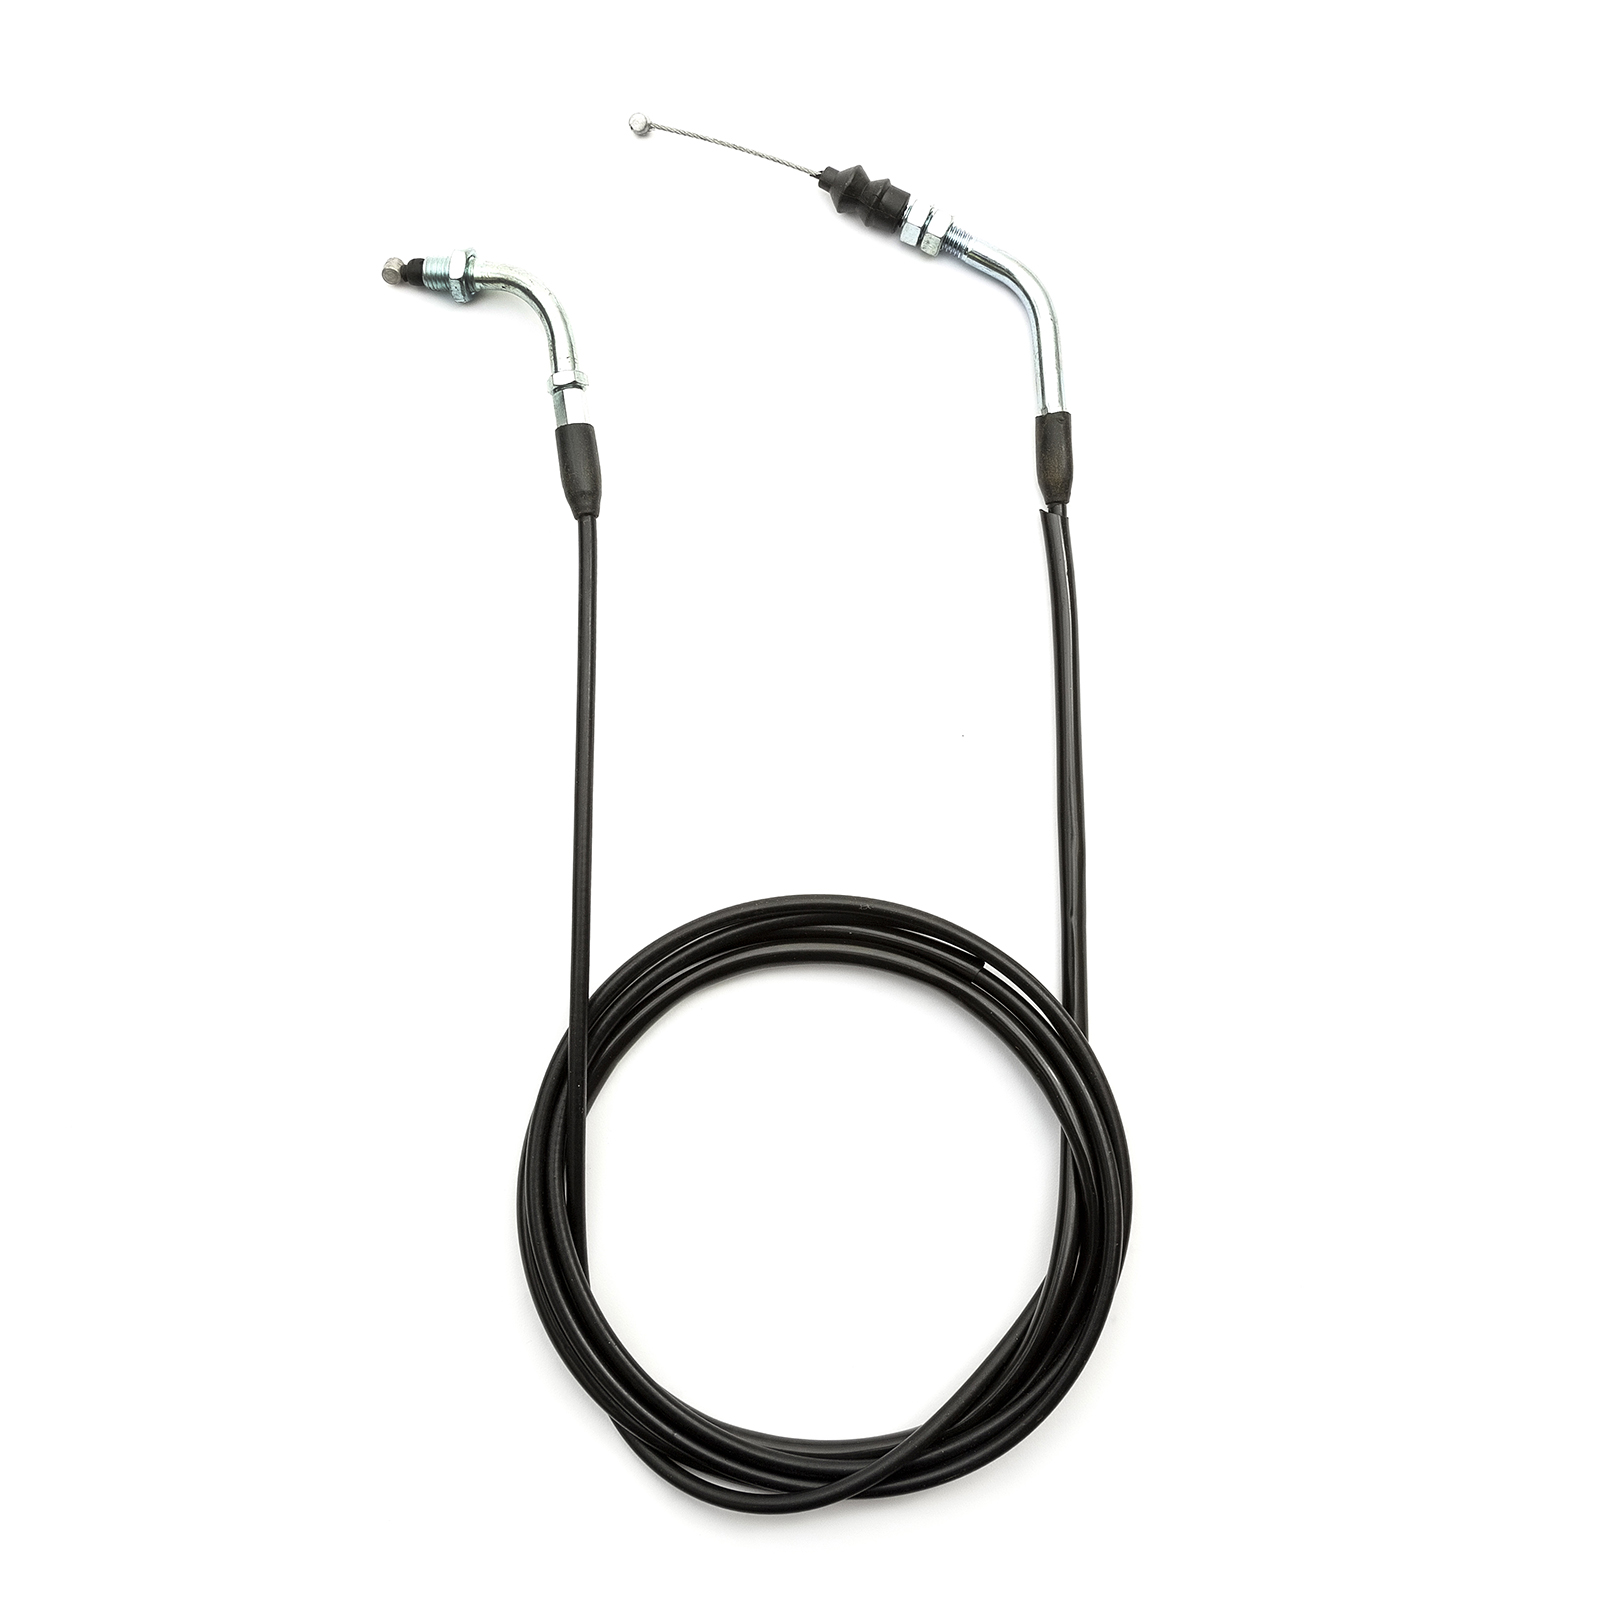 125cc Chinois Scooter Twist Cable Accelerateur 105 Lexmoto